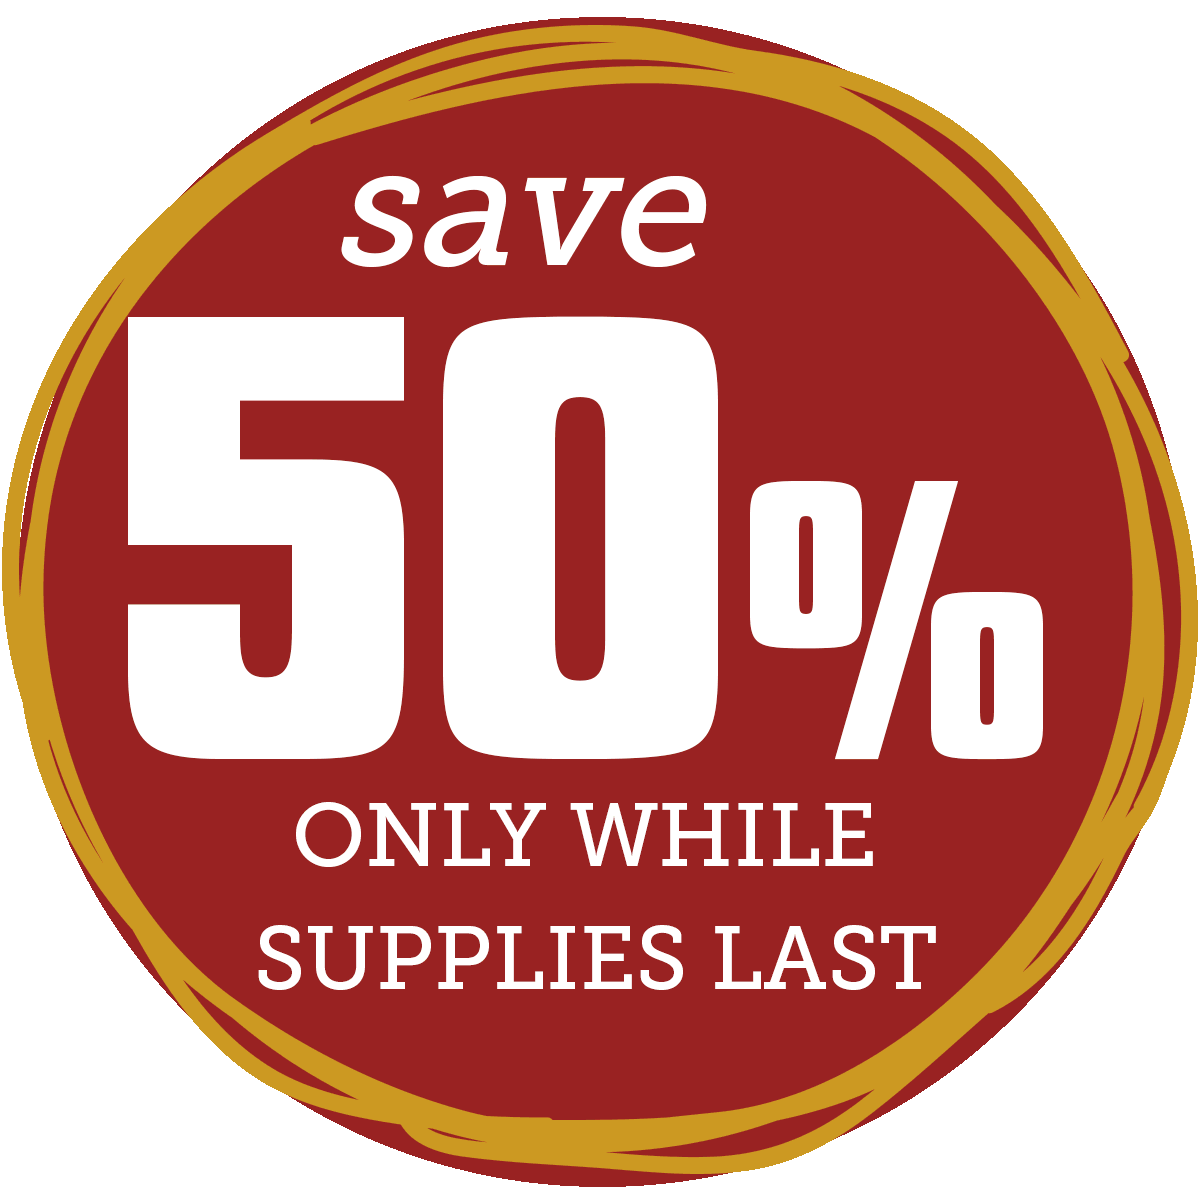 Save 50% while supplies last!